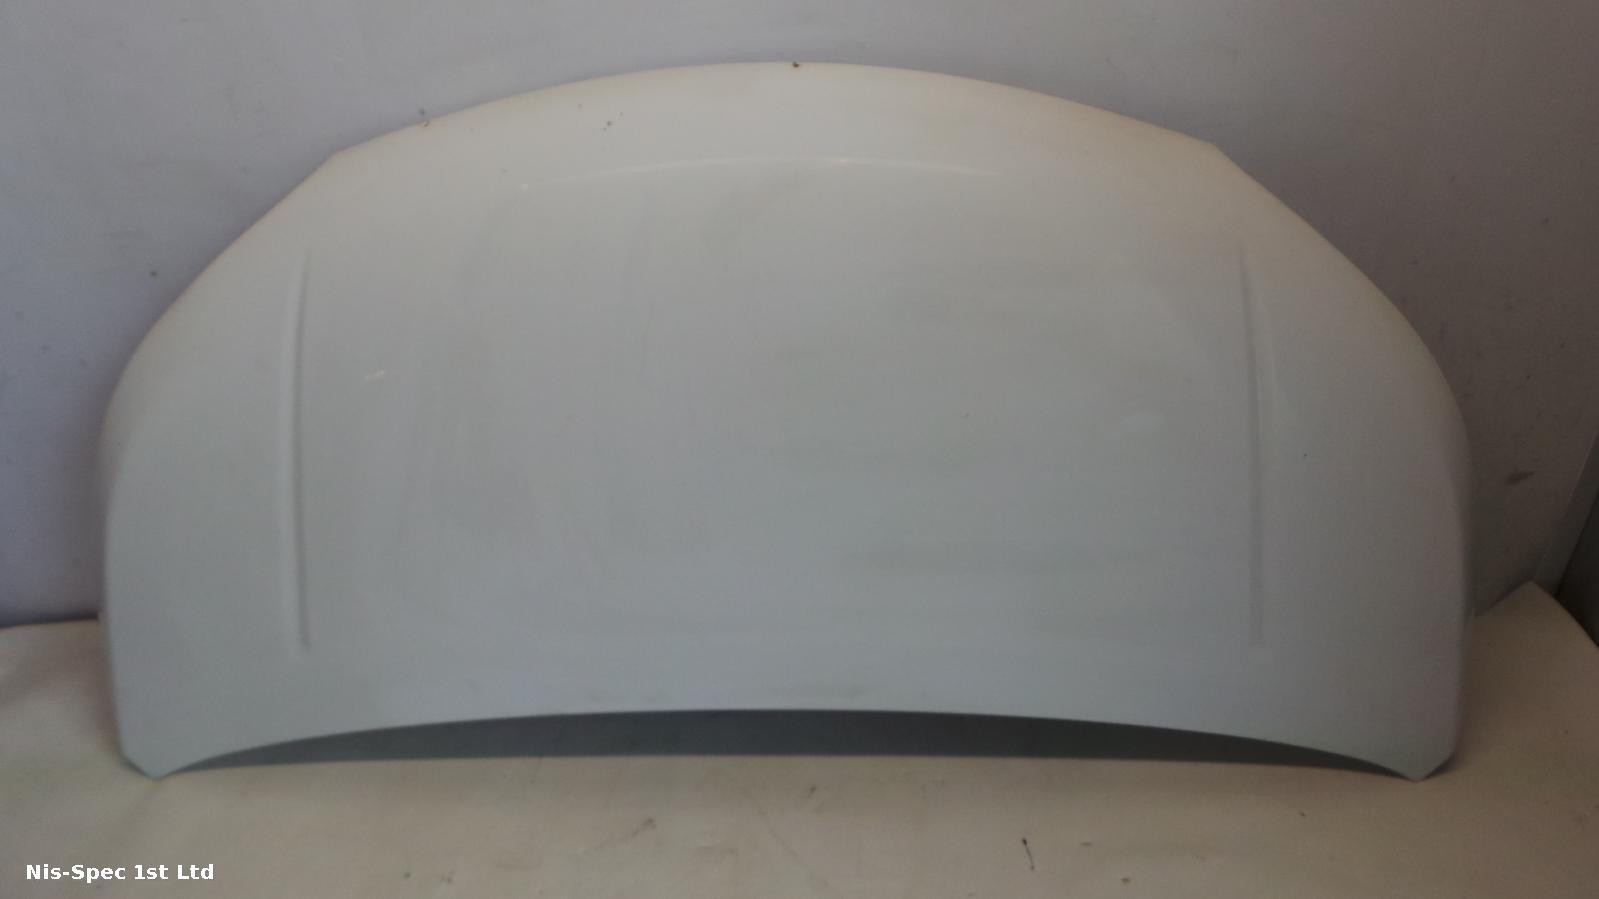 NISSAN NV200 10-14 1.5 DIESEL BONNET SOME PAINT CHIPS